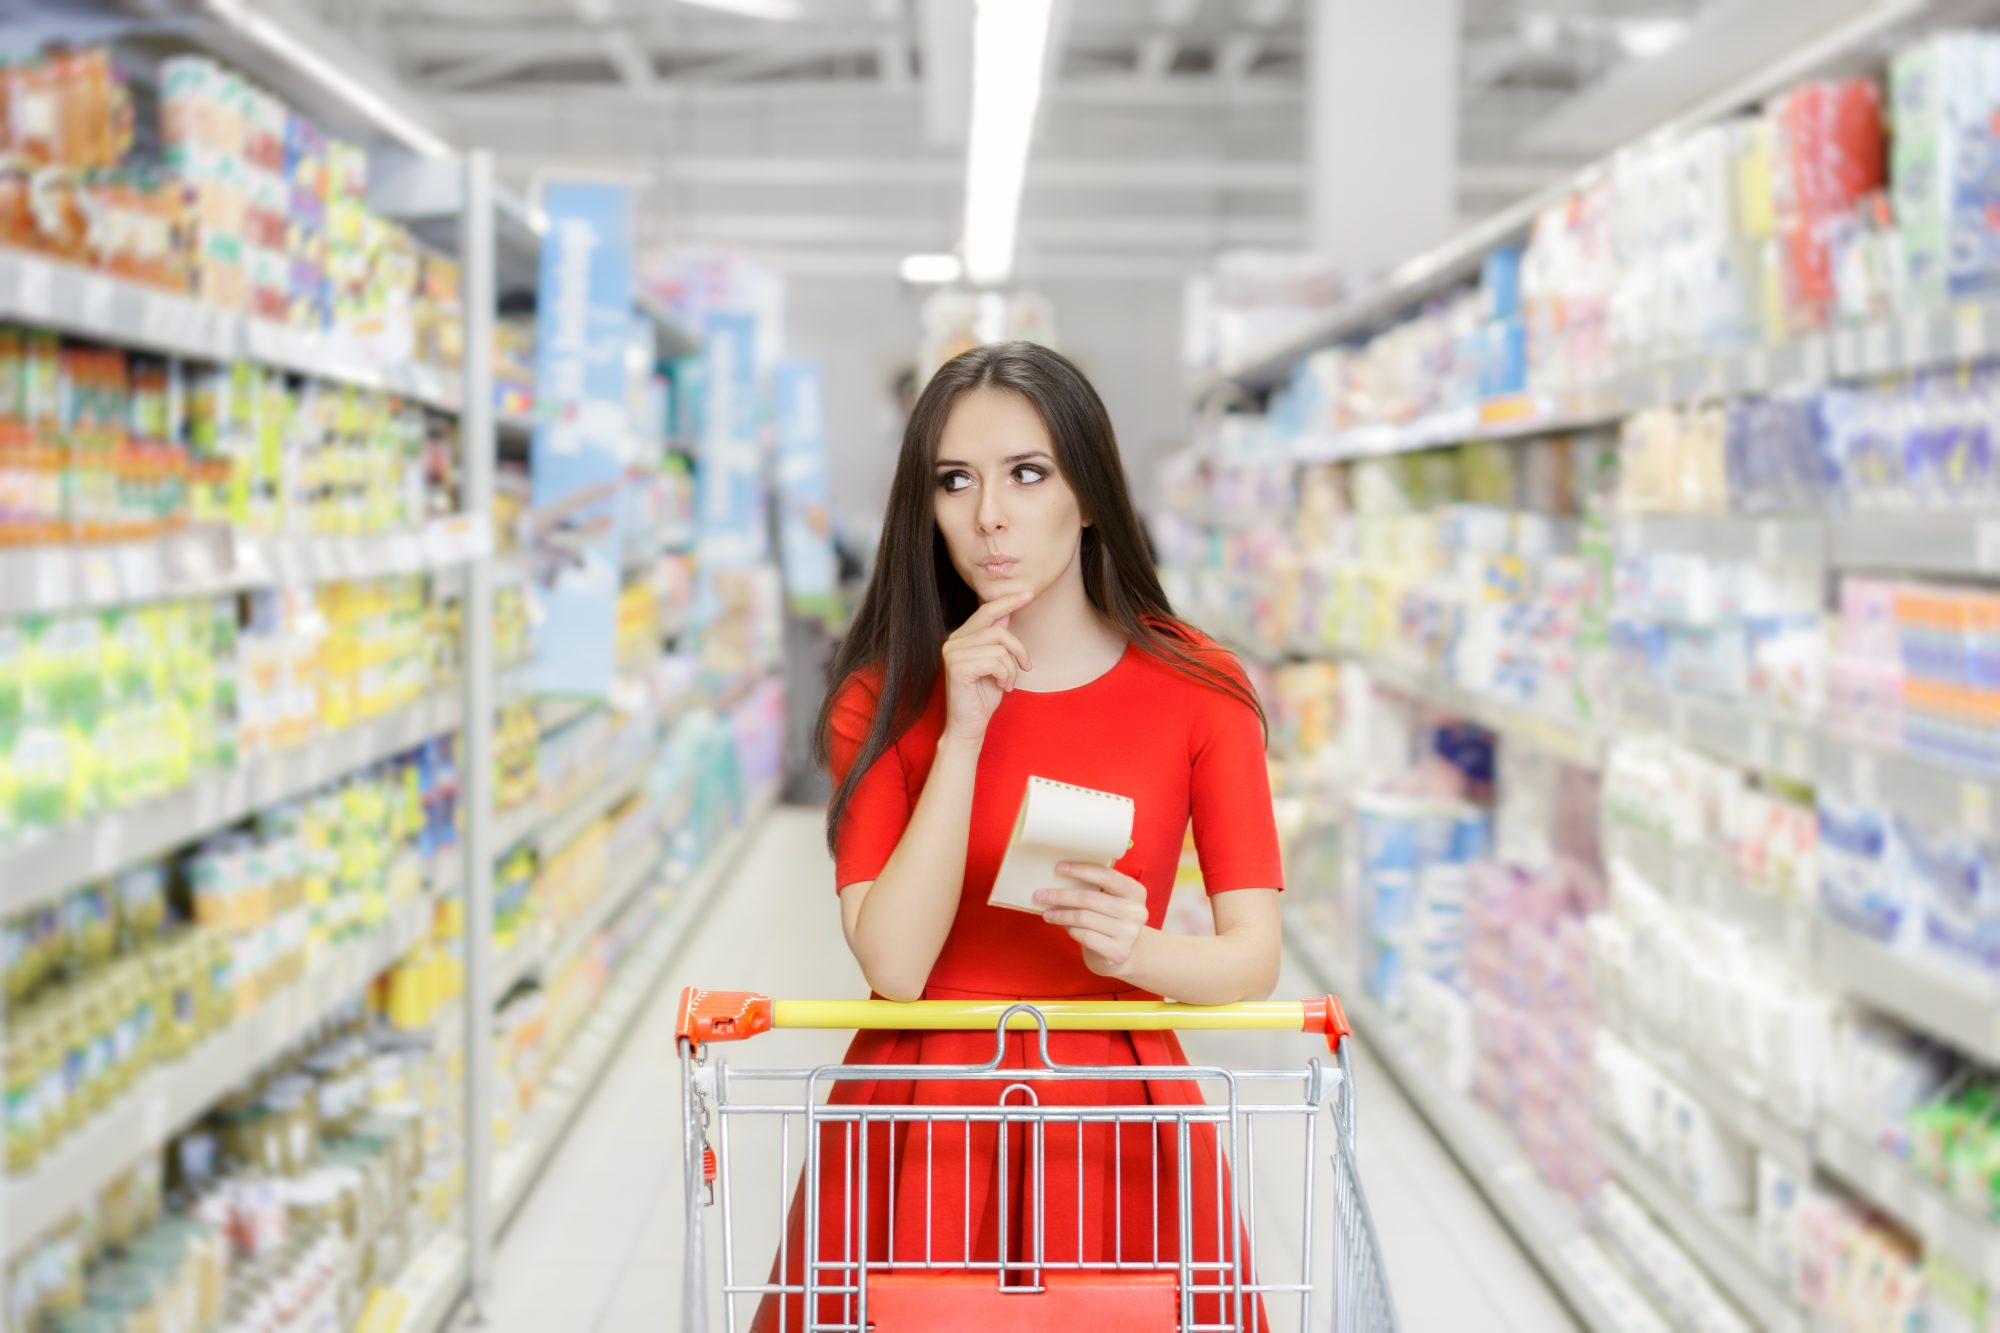 012620_Woman Grocery Shopping image